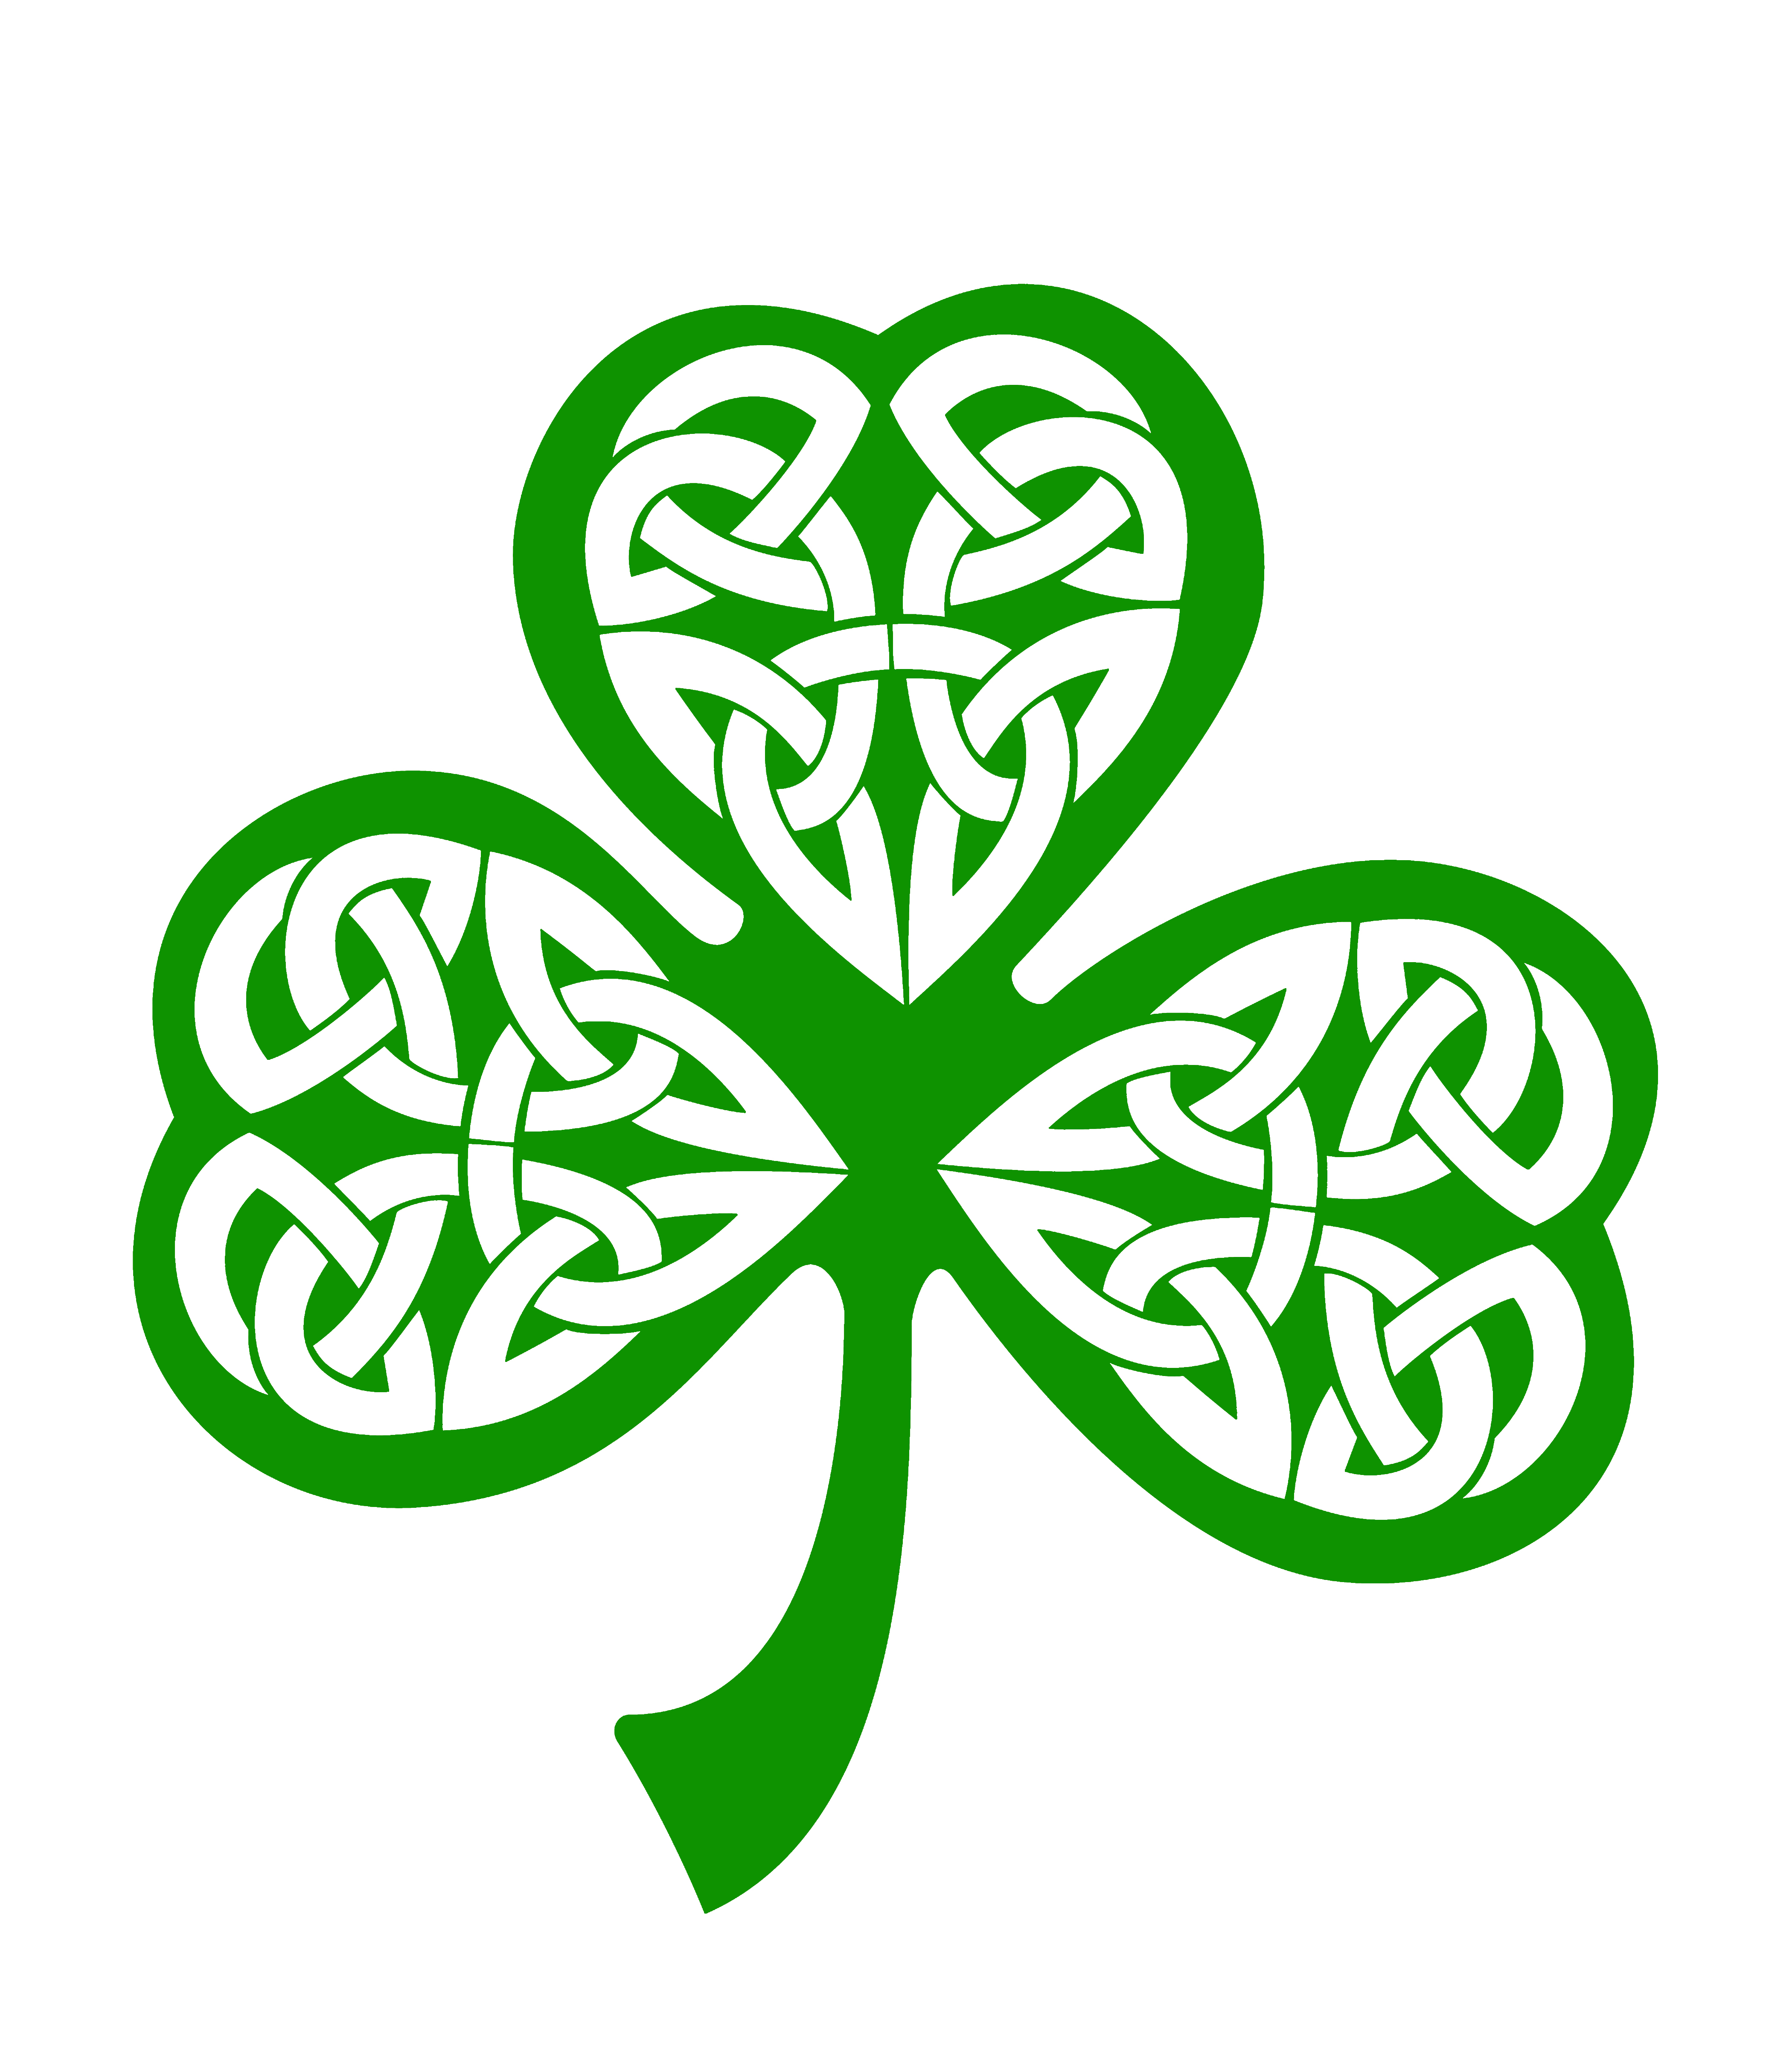 Celtic Shamrock Clip Art Pictures To Pin On Pinterest